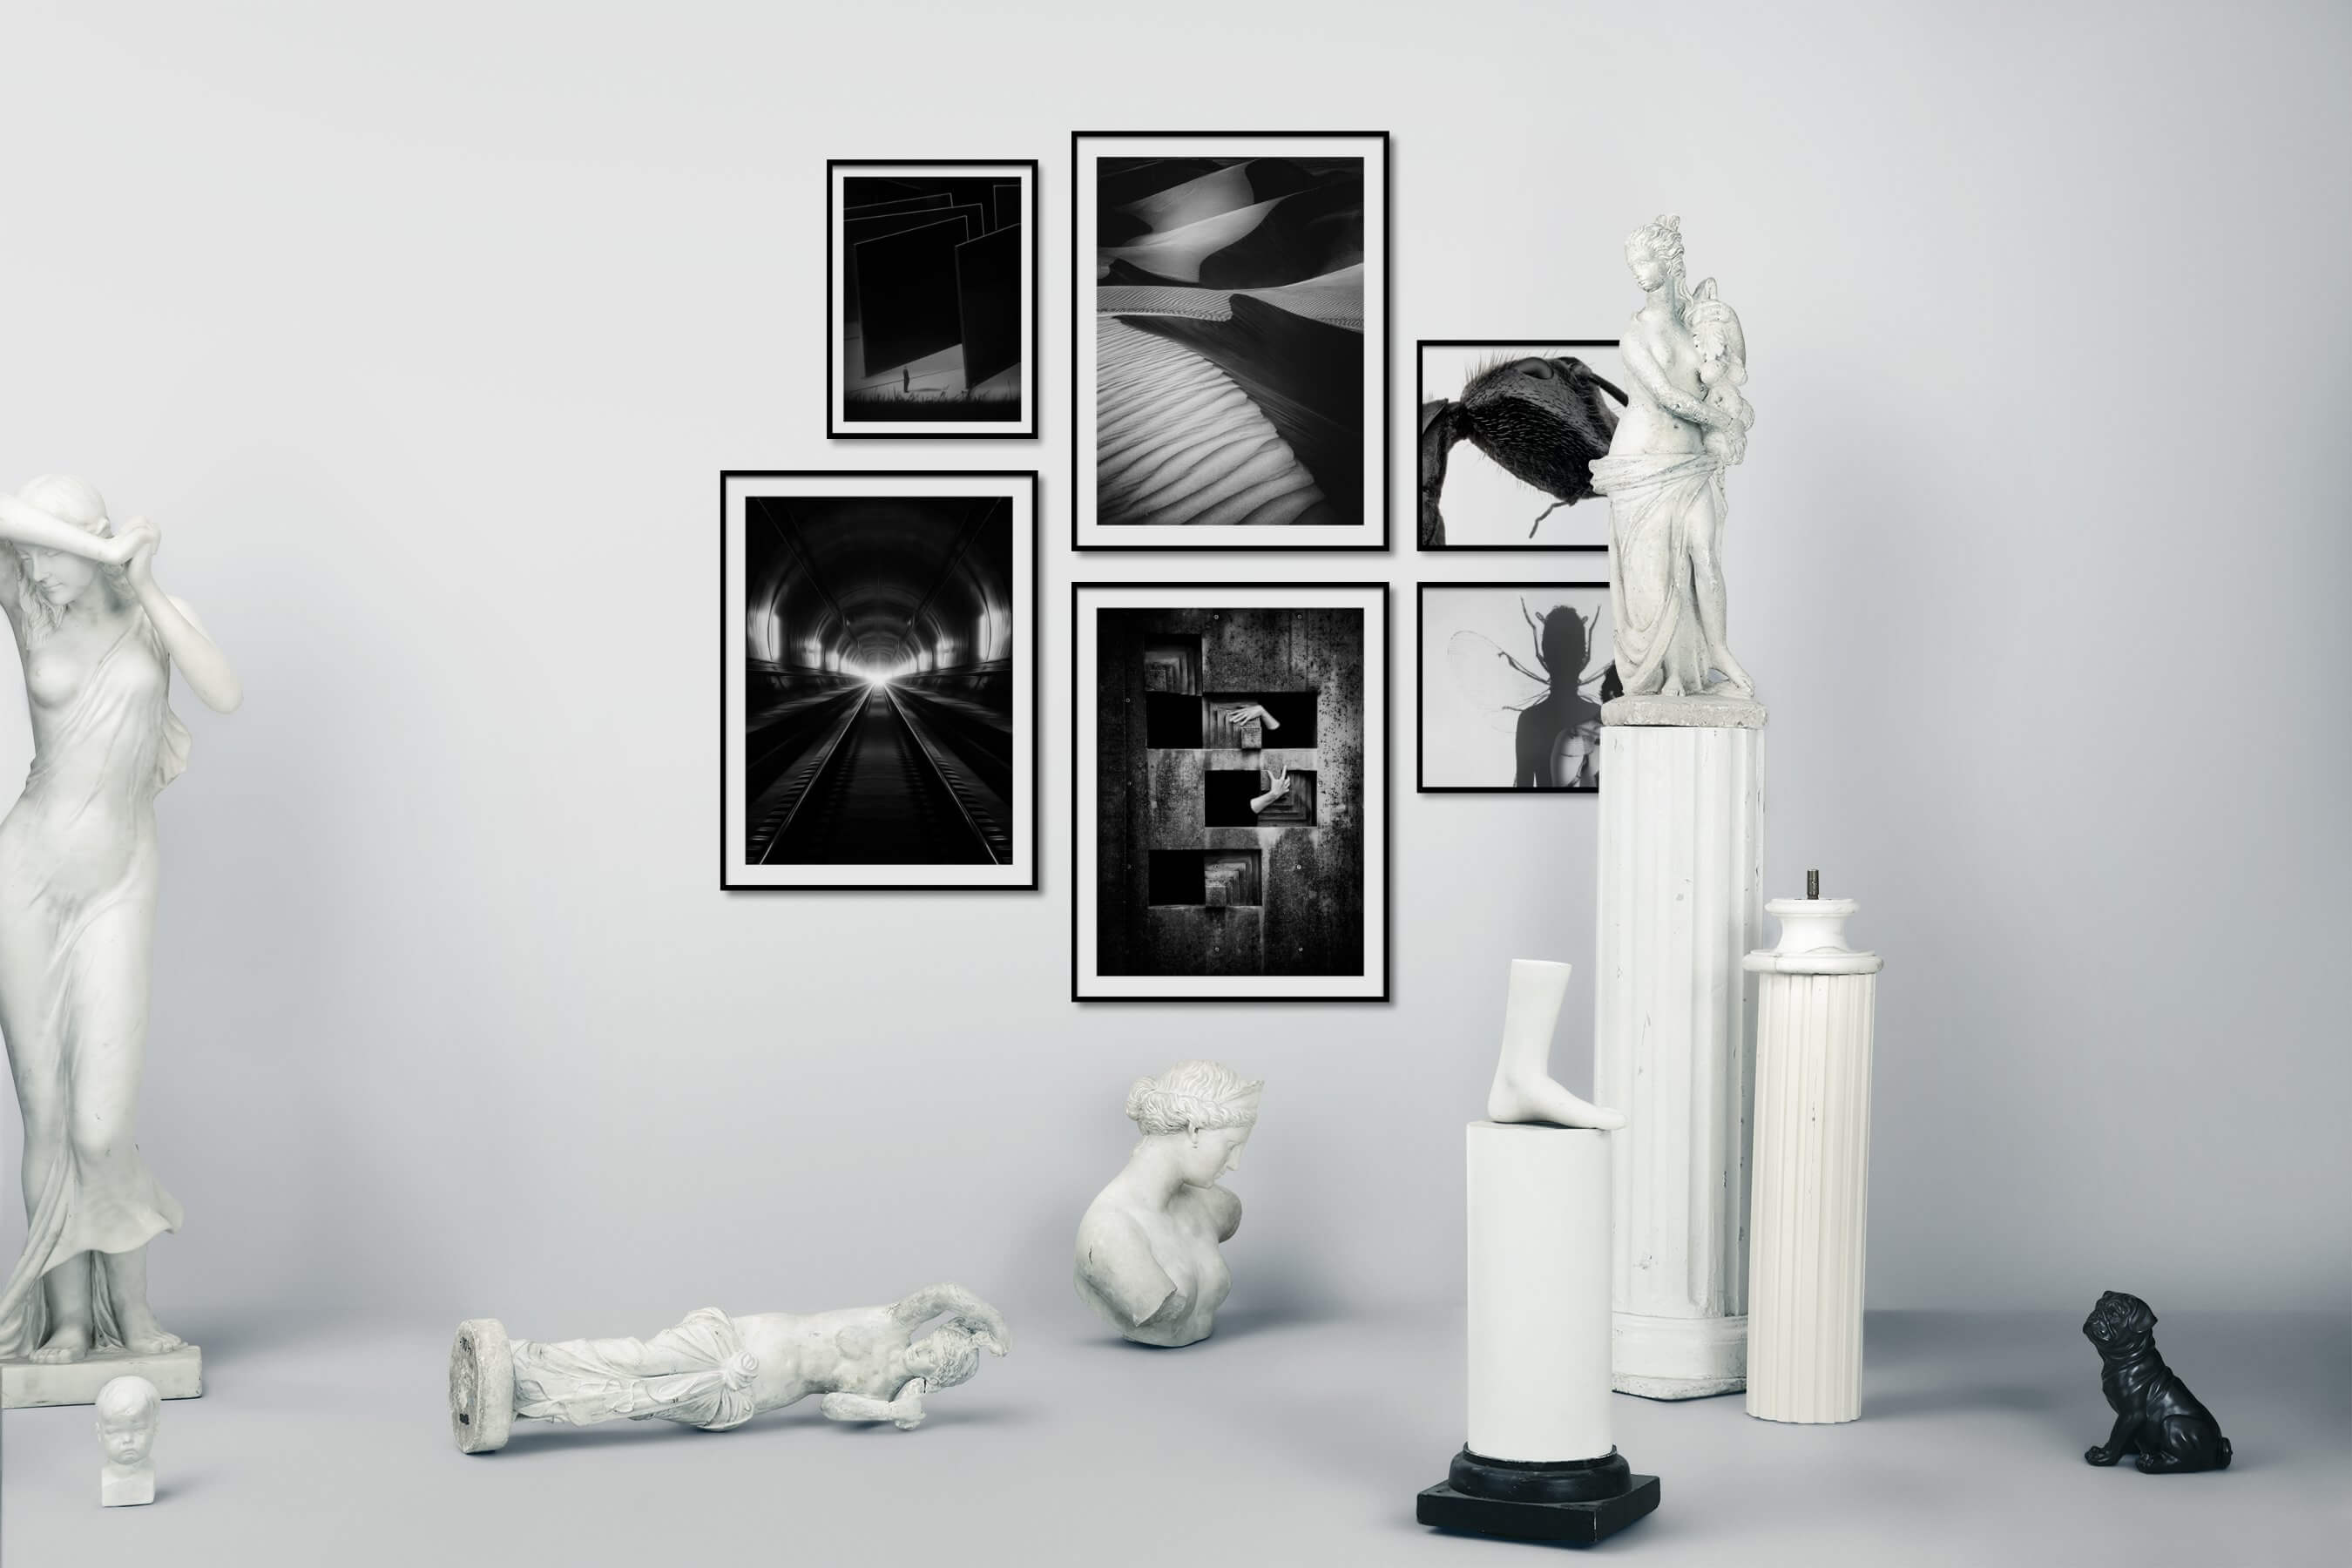 Gallery wall idea with six framed pictures arranged on a wall depicting Artsy, Black & White, For the Moderate, Nature, Bright Tones, For the Minimalist, and Animals